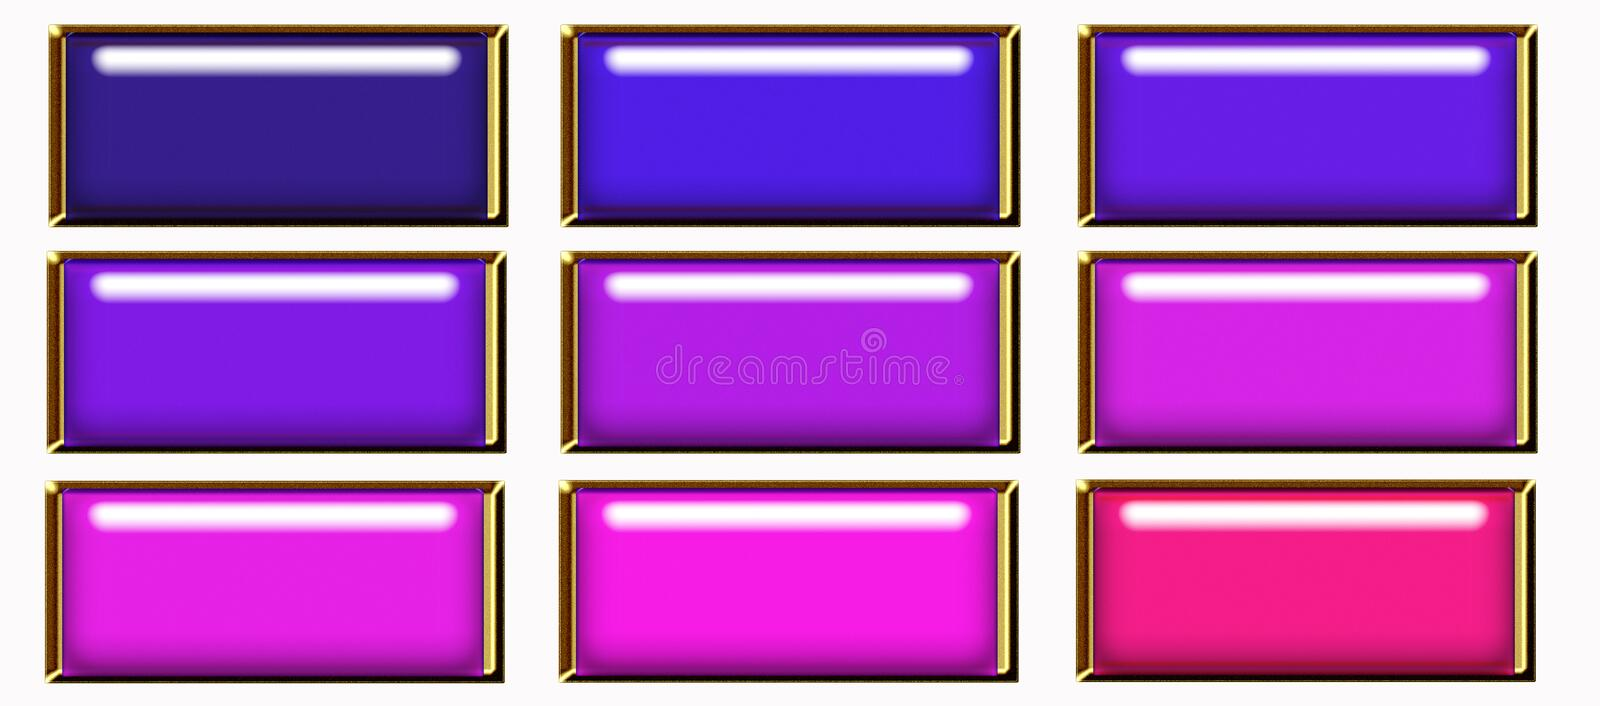 Download Rectangular  web button stock illustration. Image of buttons - 6934291